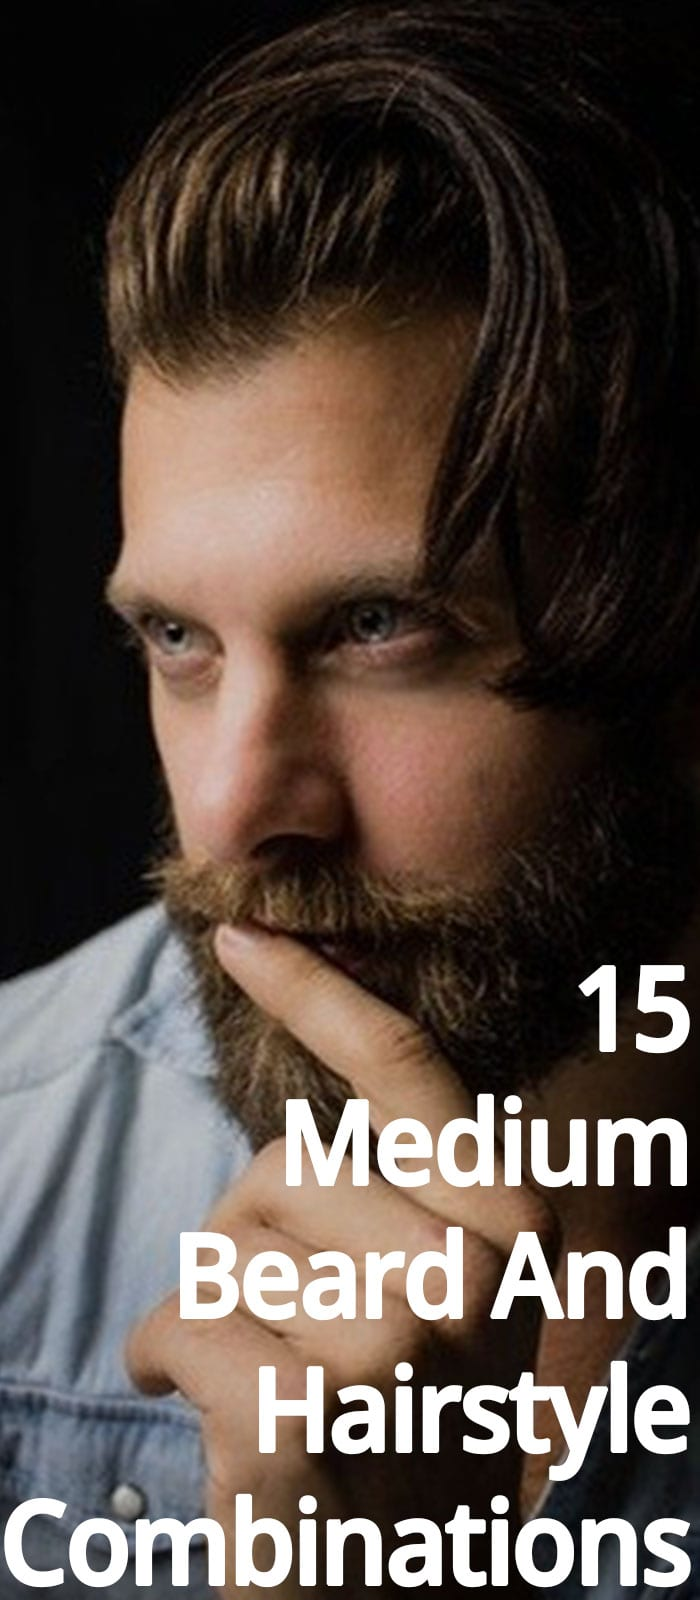 15 Medium Beard And Hairstyle Combinations.